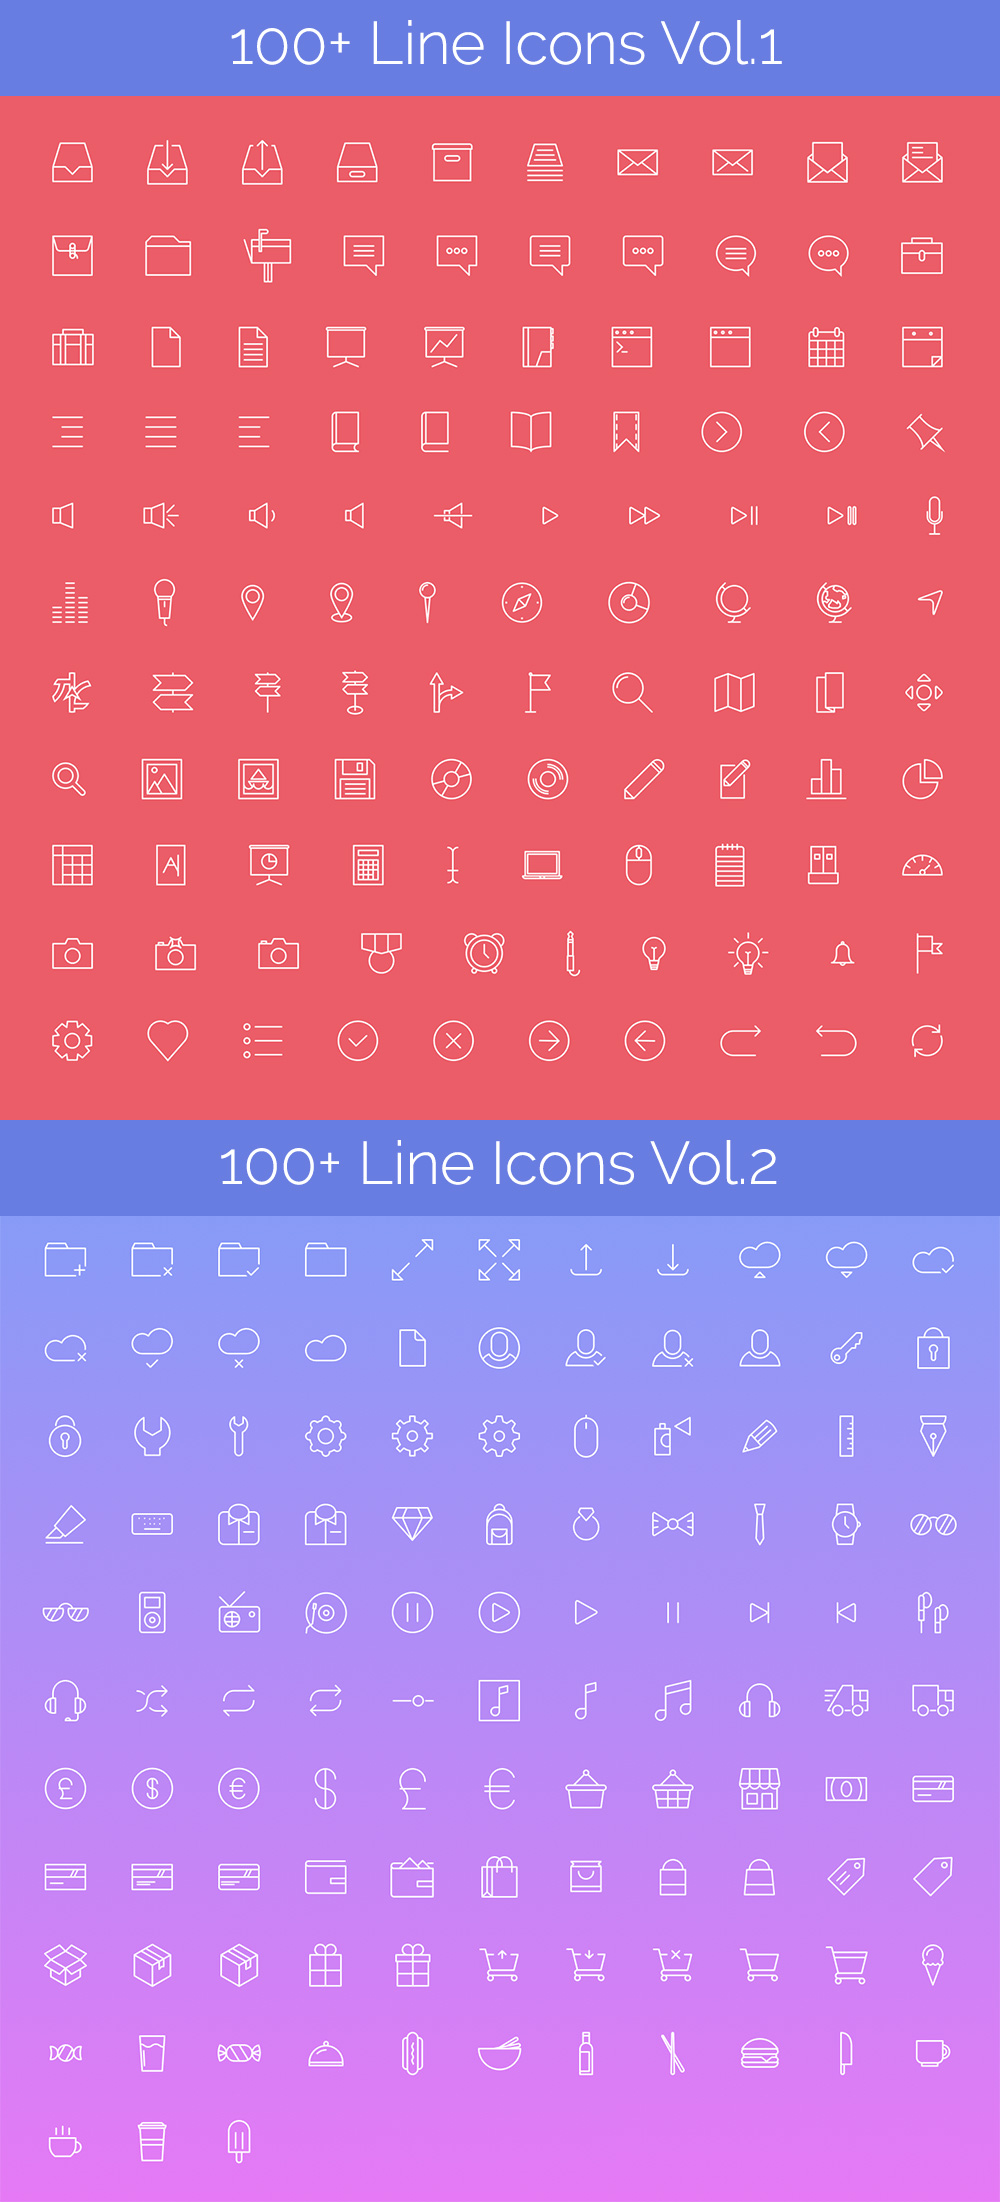 Simple_line_icons_full_view